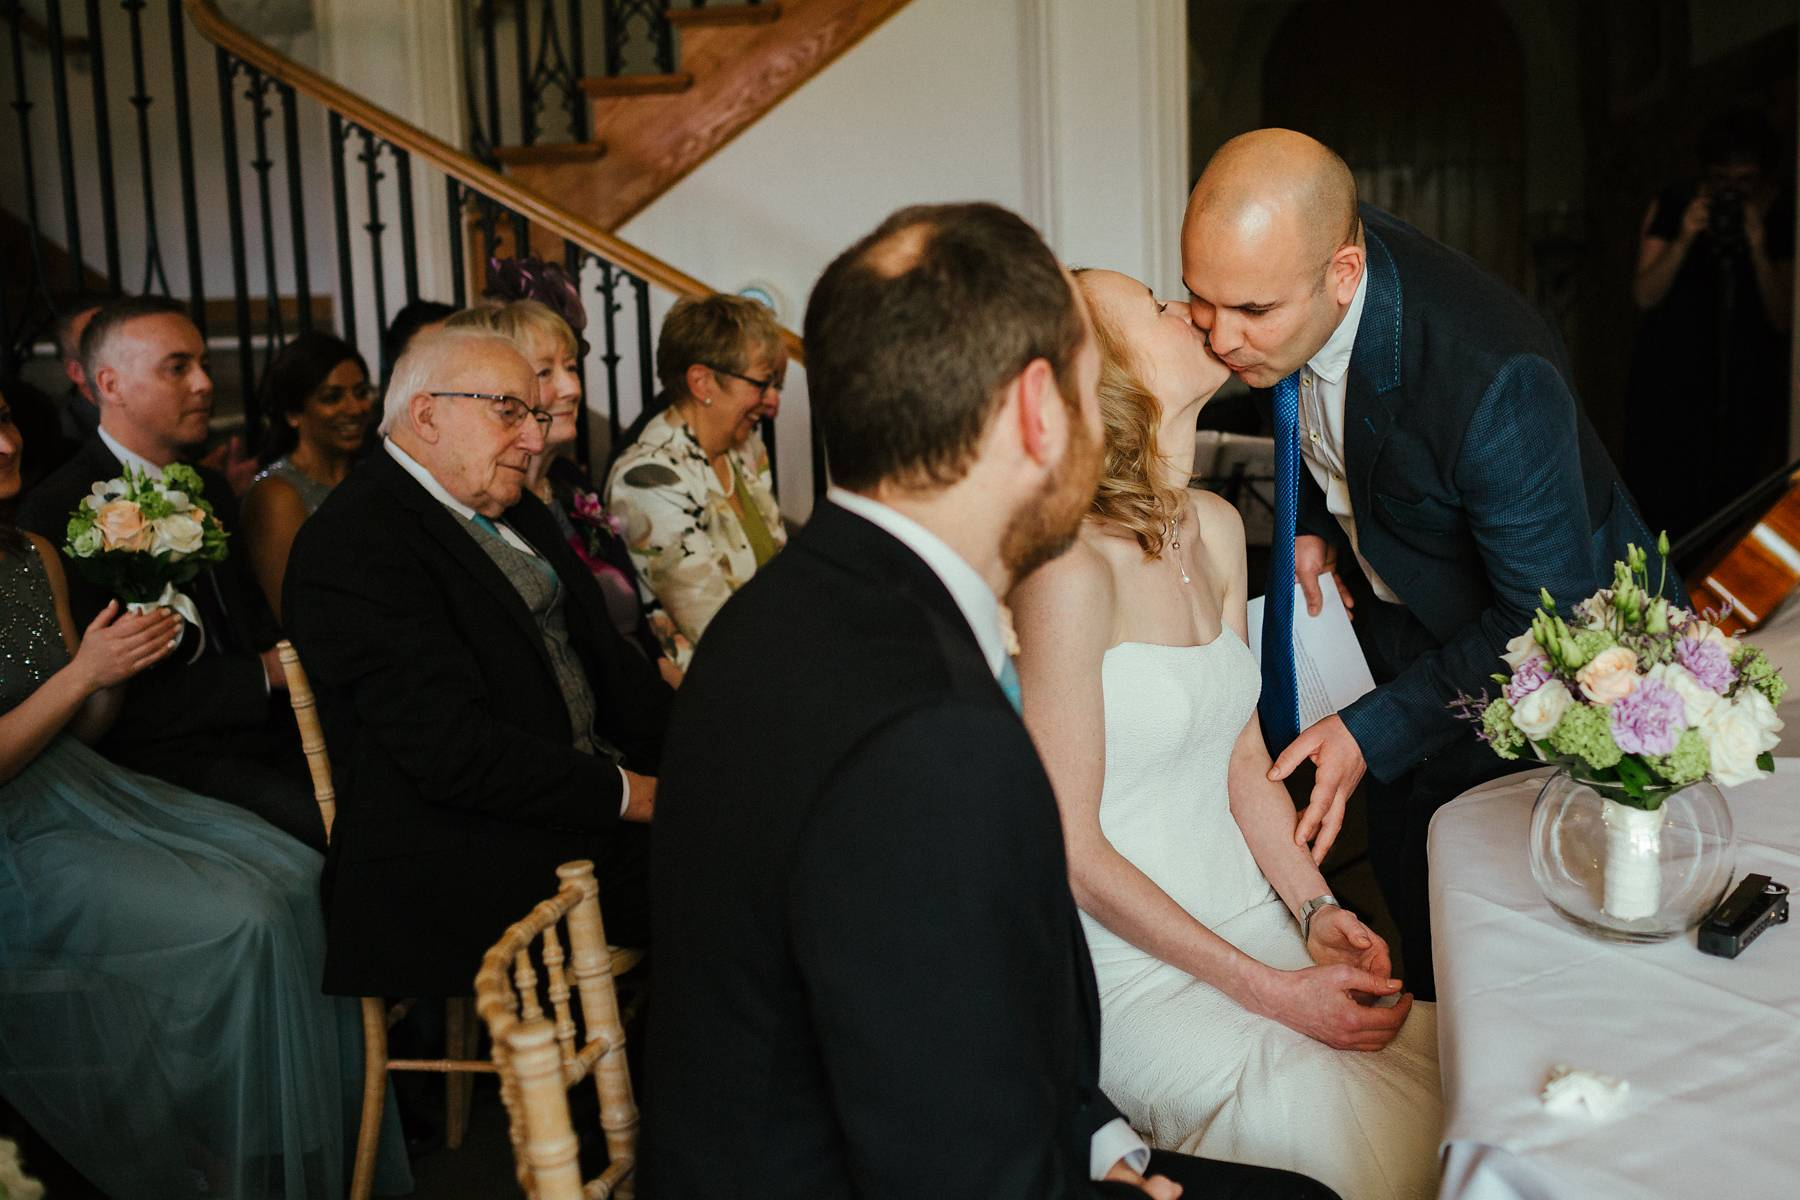 How to make parents happy on your wedding day